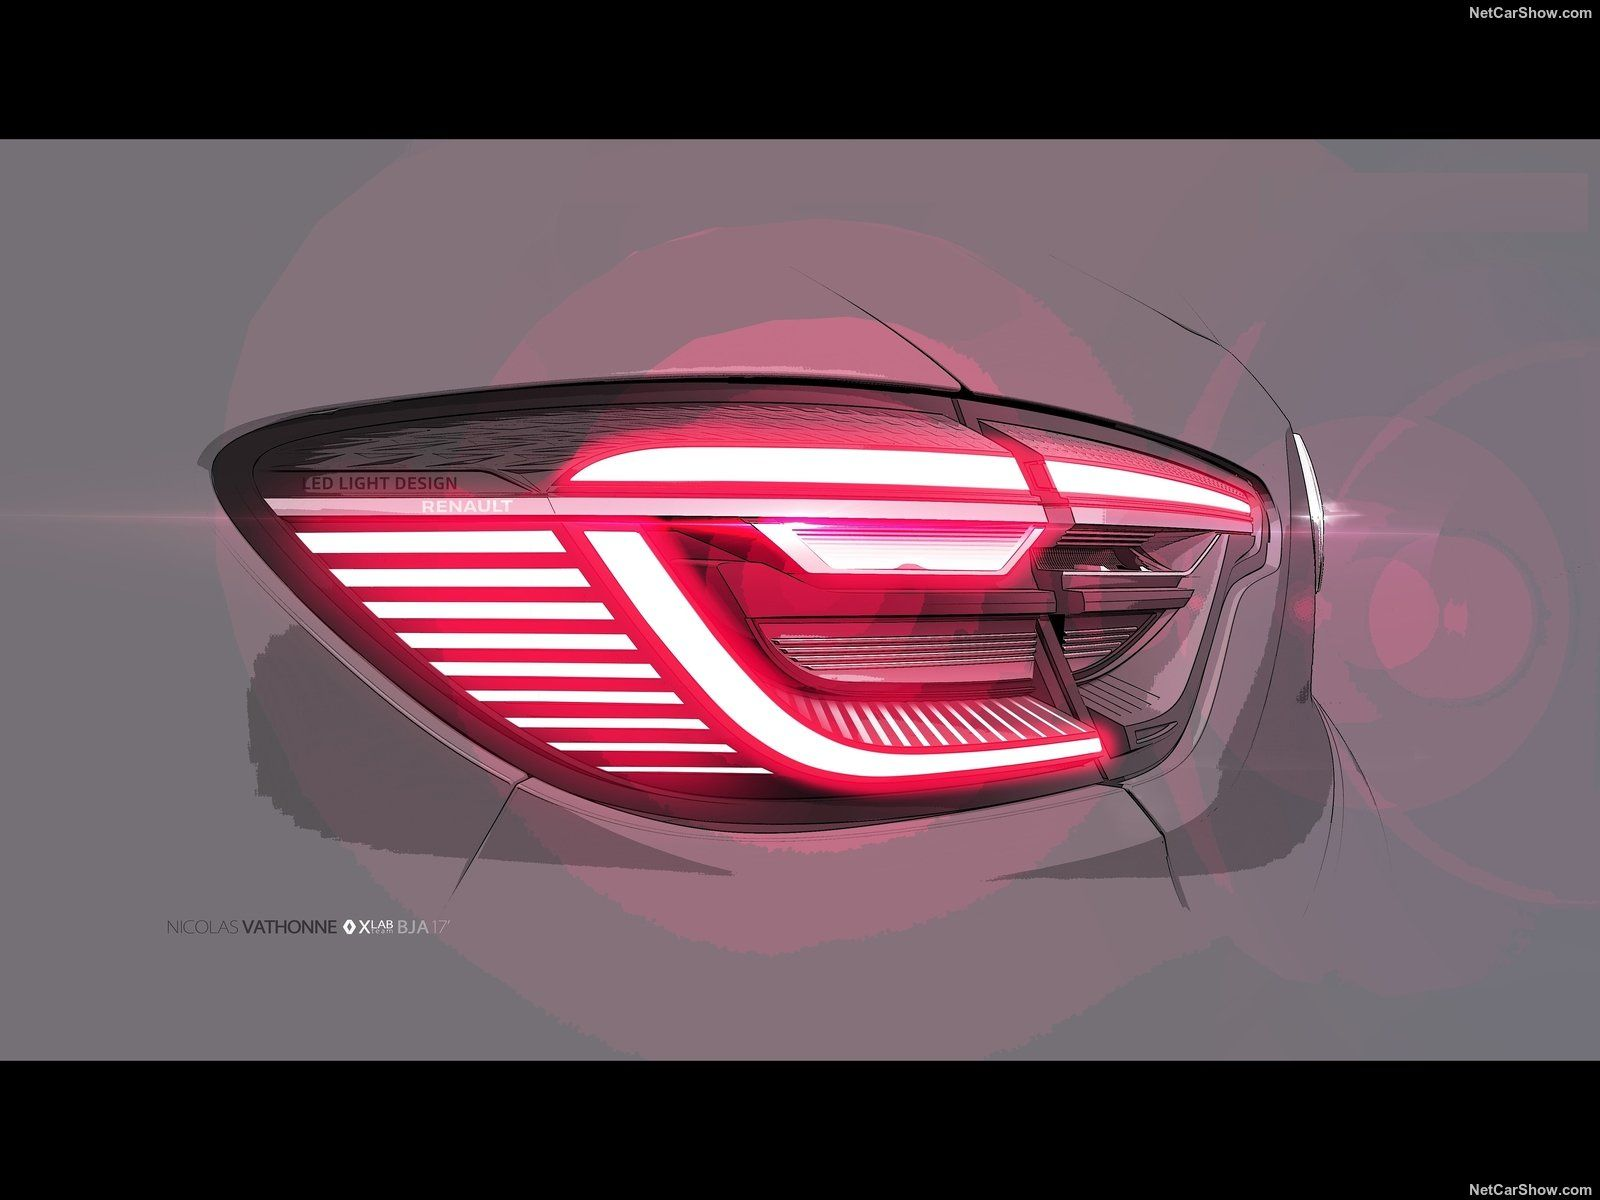 2020 Renault Clio Taillight Design Sketch Car Design Sketch Car